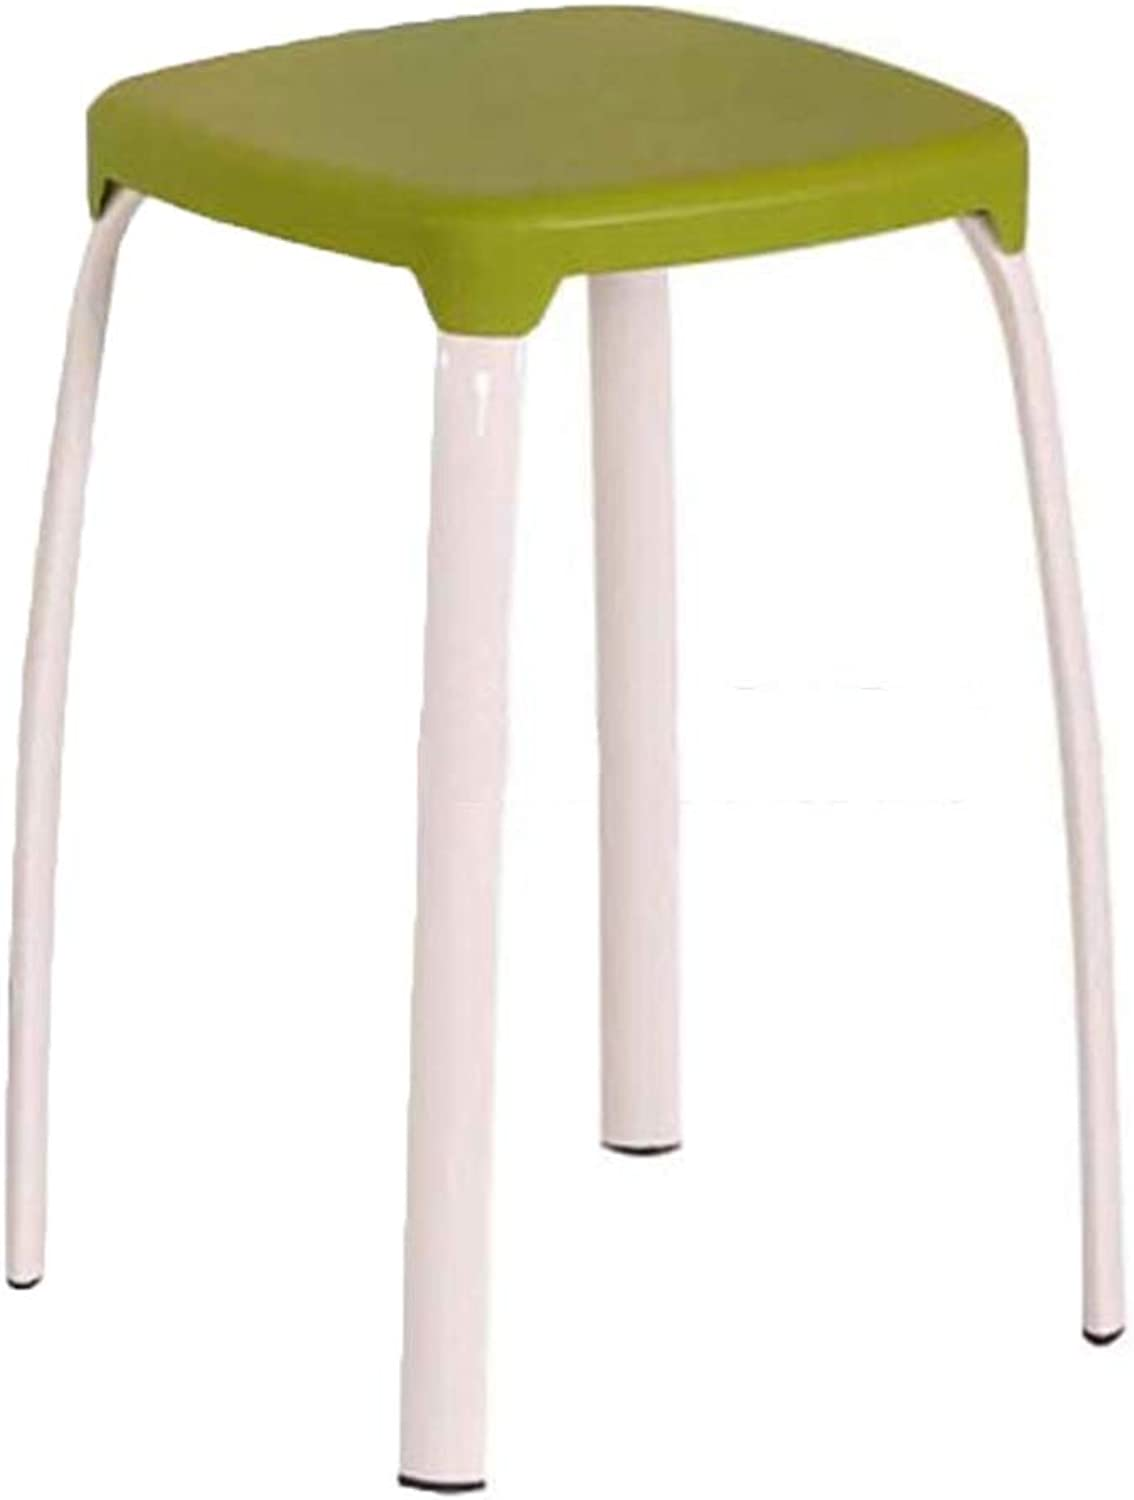 Stool Household Plastic Fashion Creative High Stool Thickening Simple Round Bench